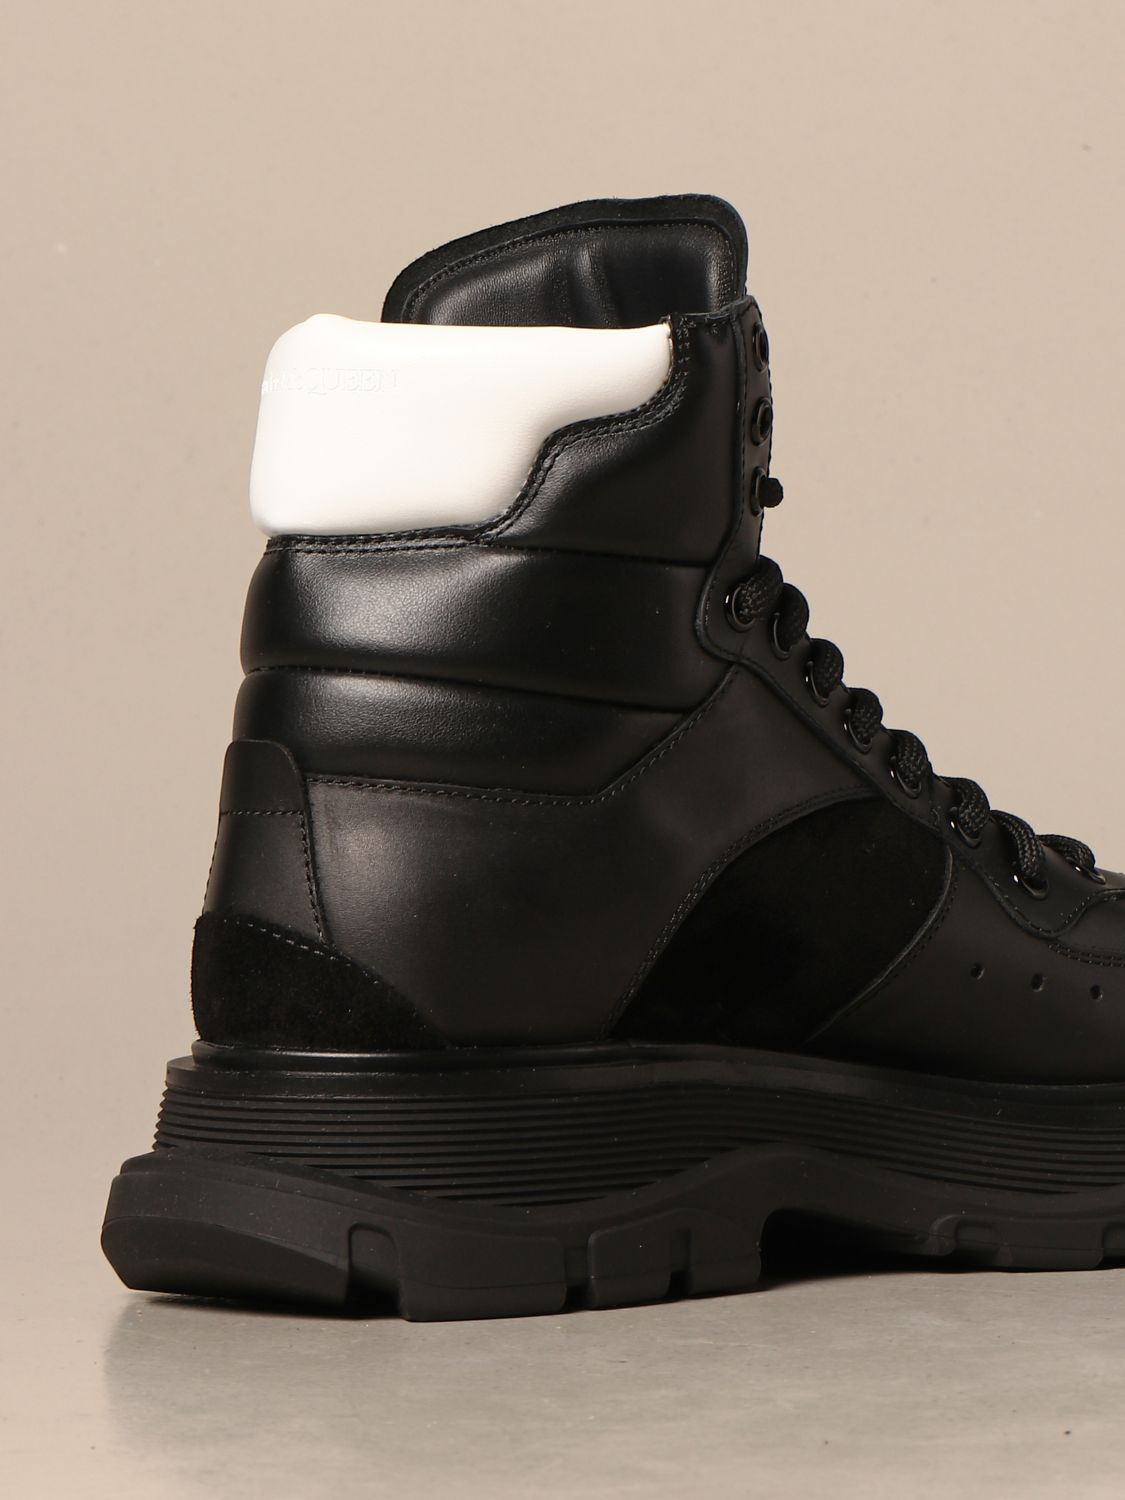 Boots Alexander Mcqueen: Alexander McQueen ankle boots in leather and suede black 3